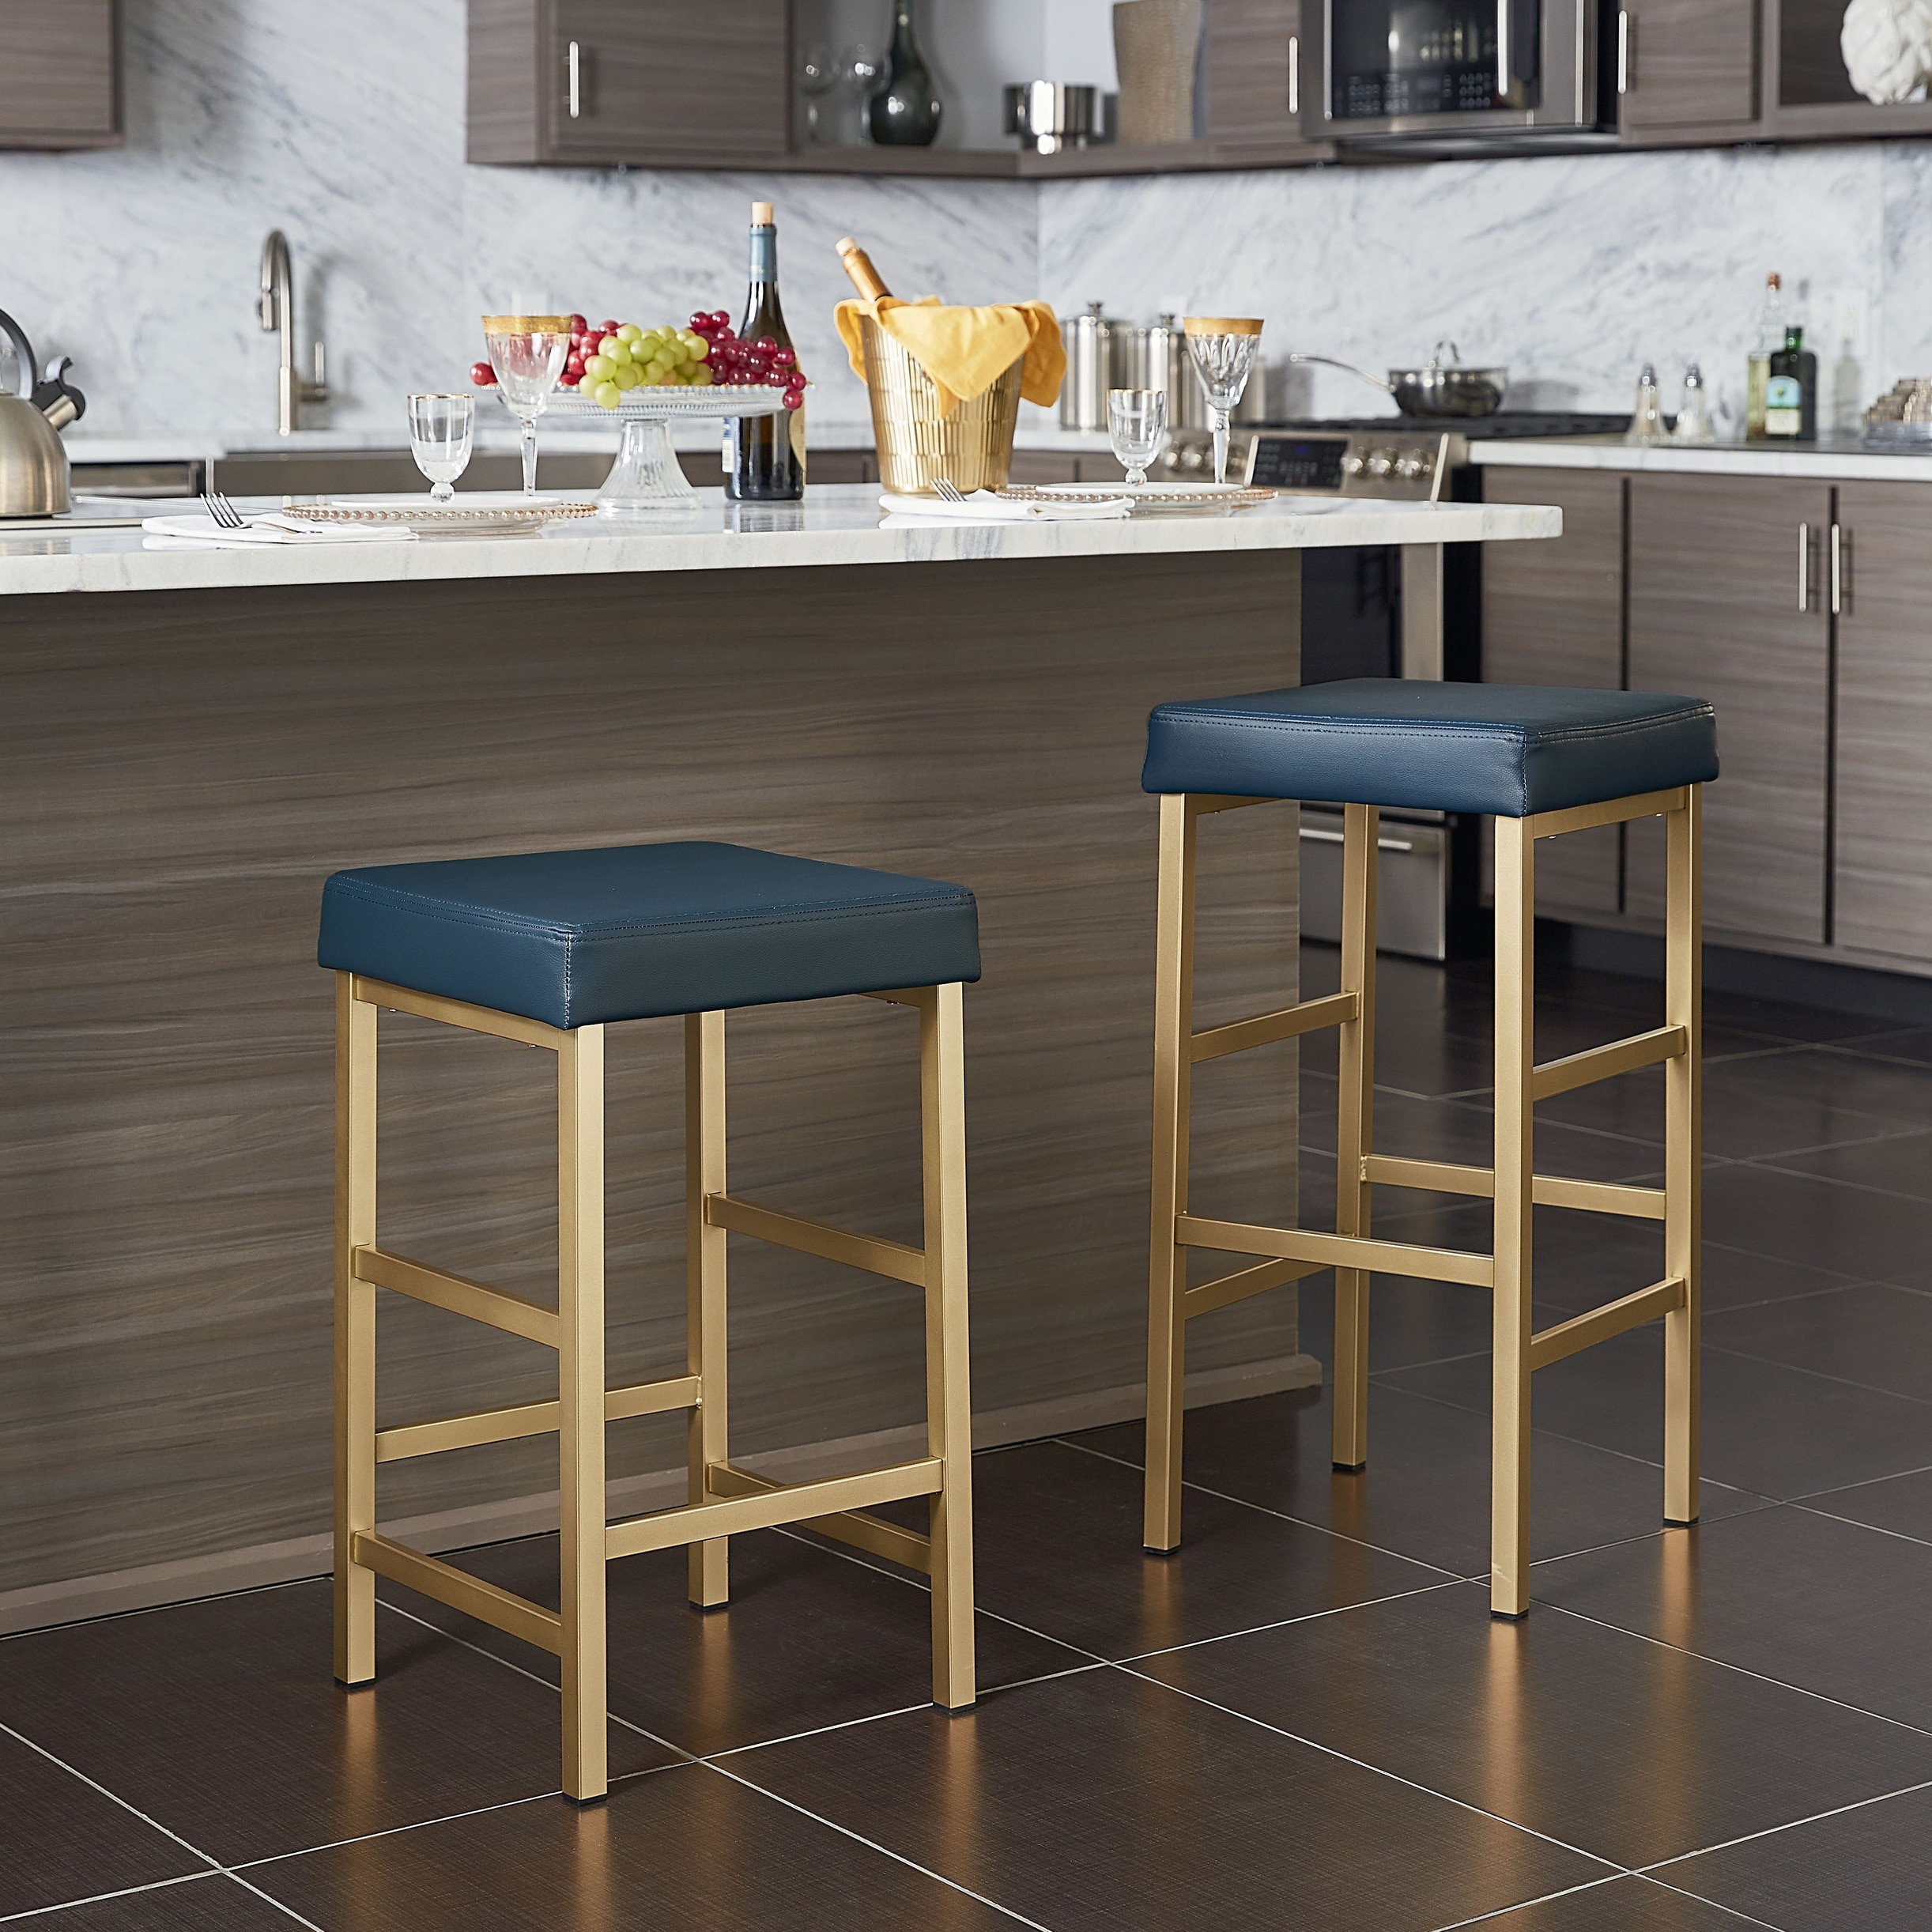 Prime Buy Gold Finish Counter Bar Stools Online At Overstock Gamerscity Chair Design For Home Gamerscityorg